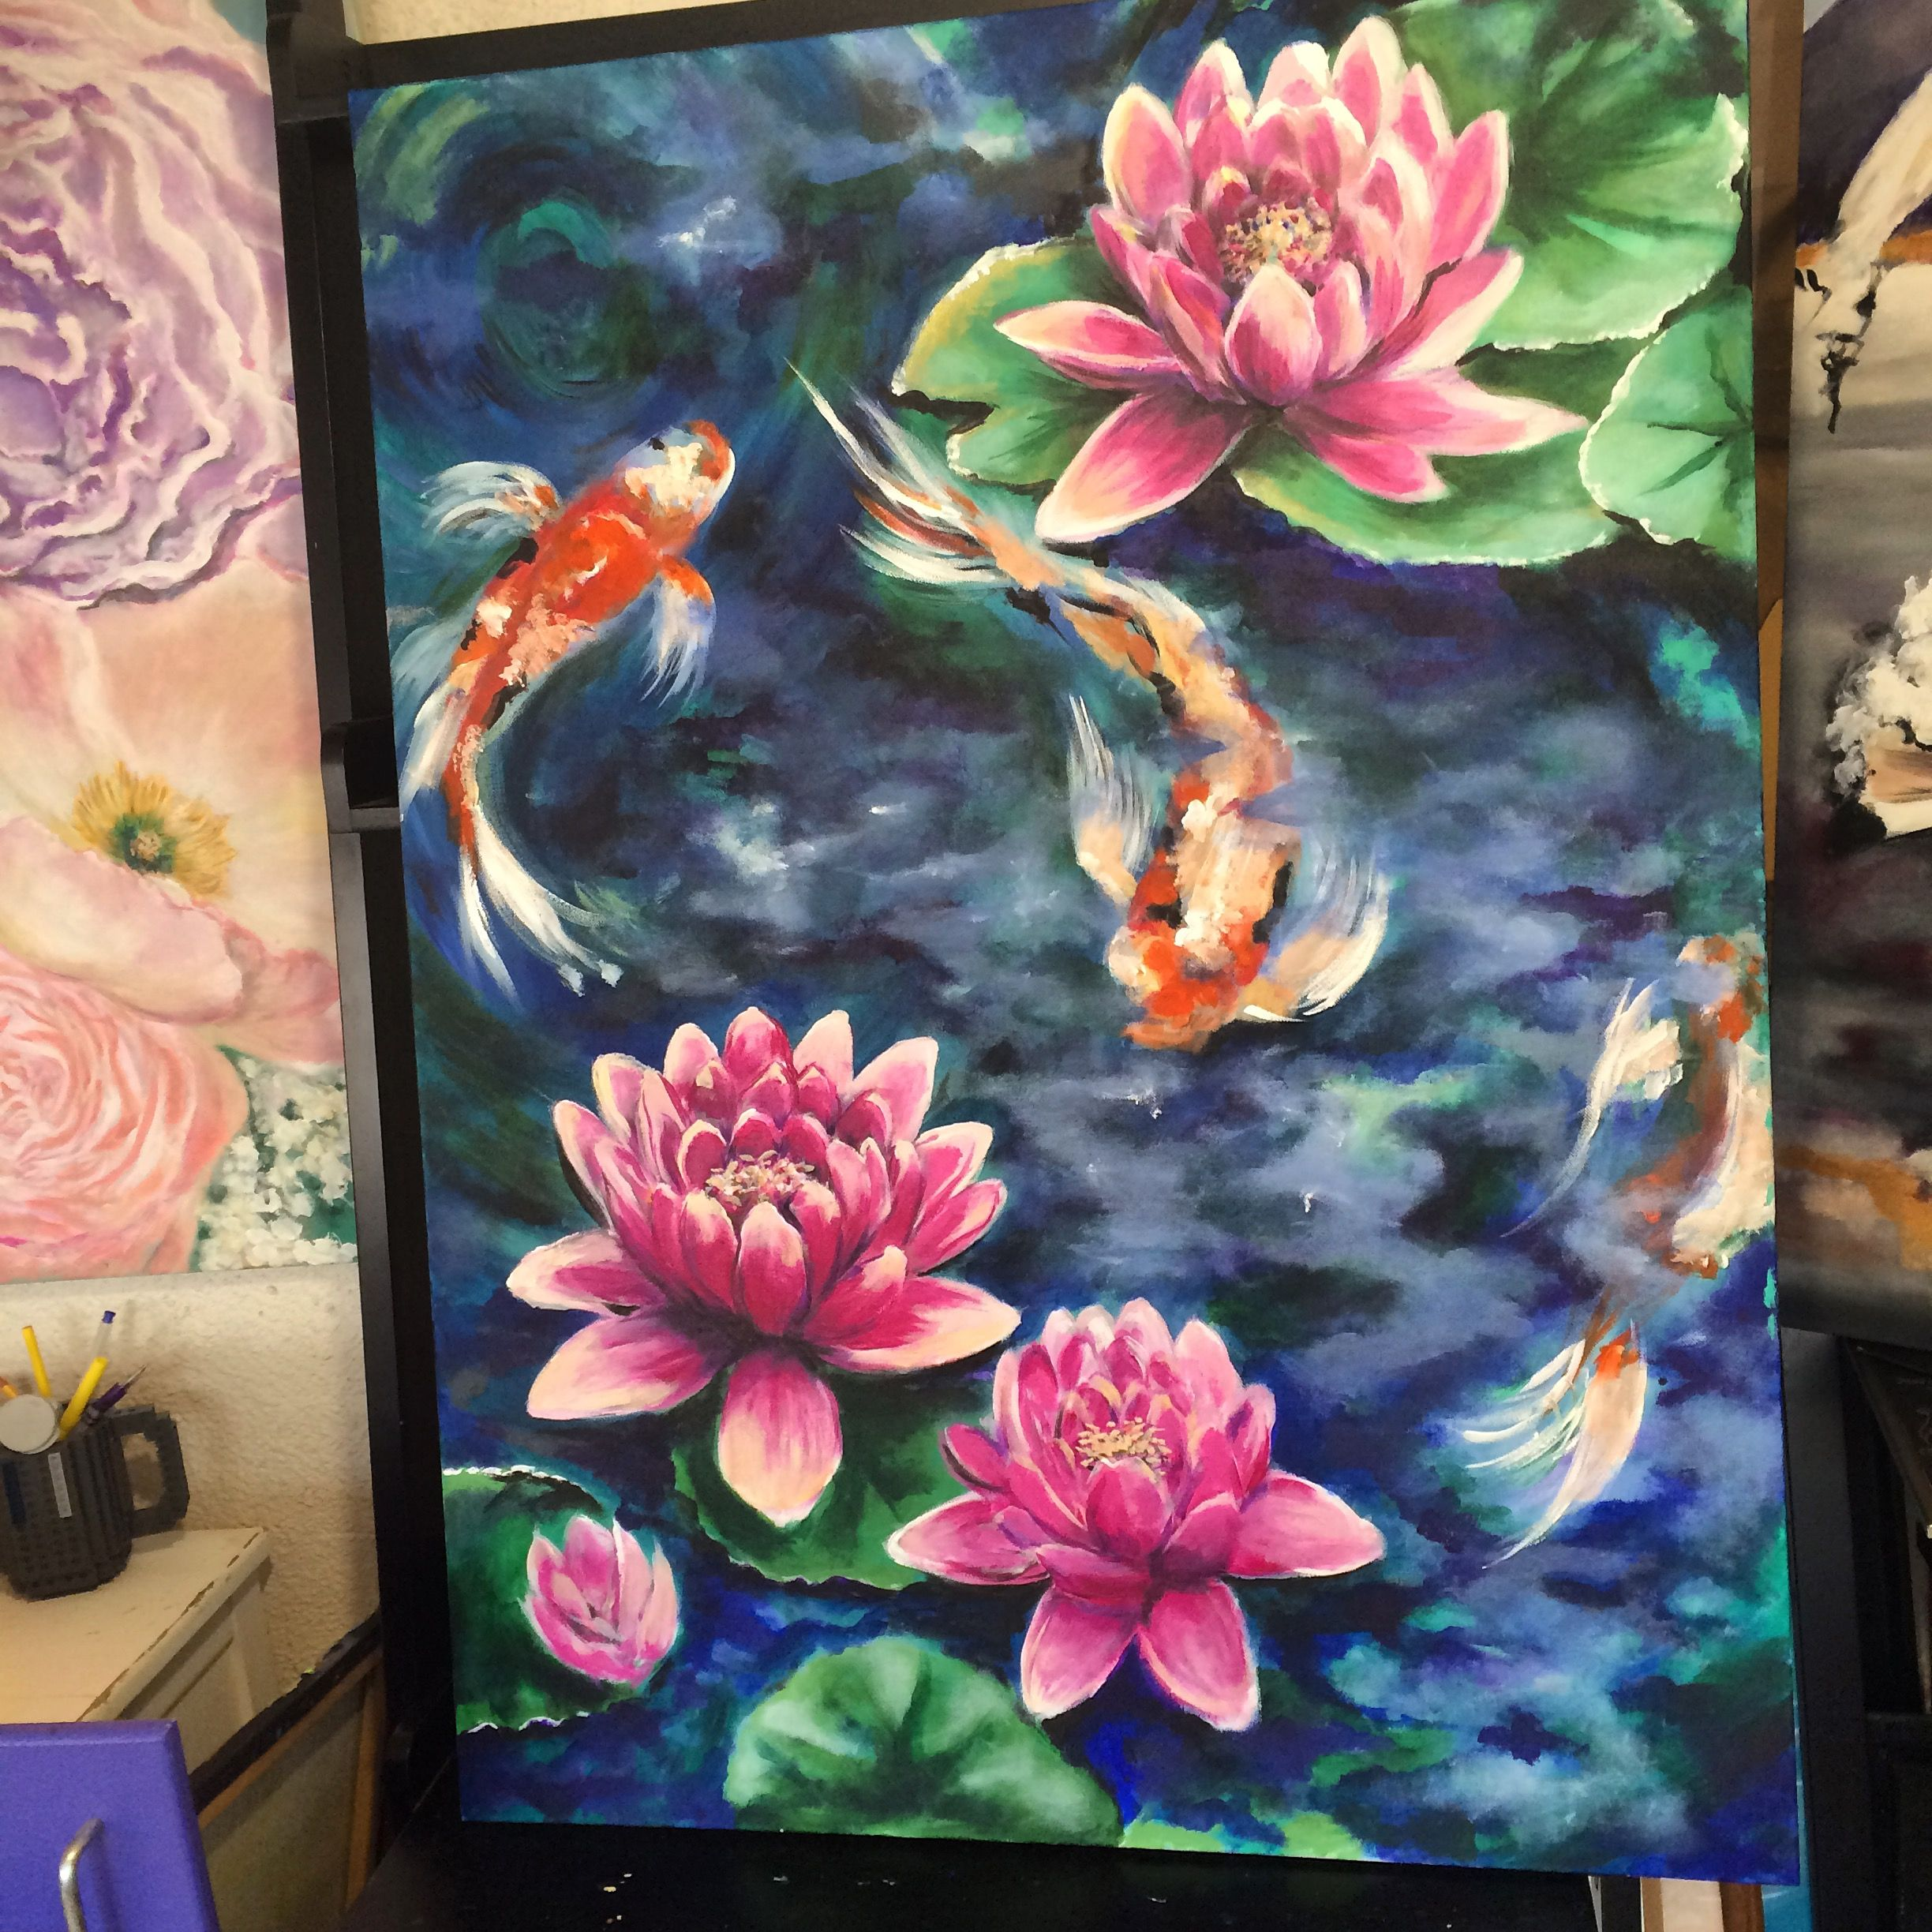 Koi Fish Pond With Lotus Flowers Surrounding Colorful Acrylic